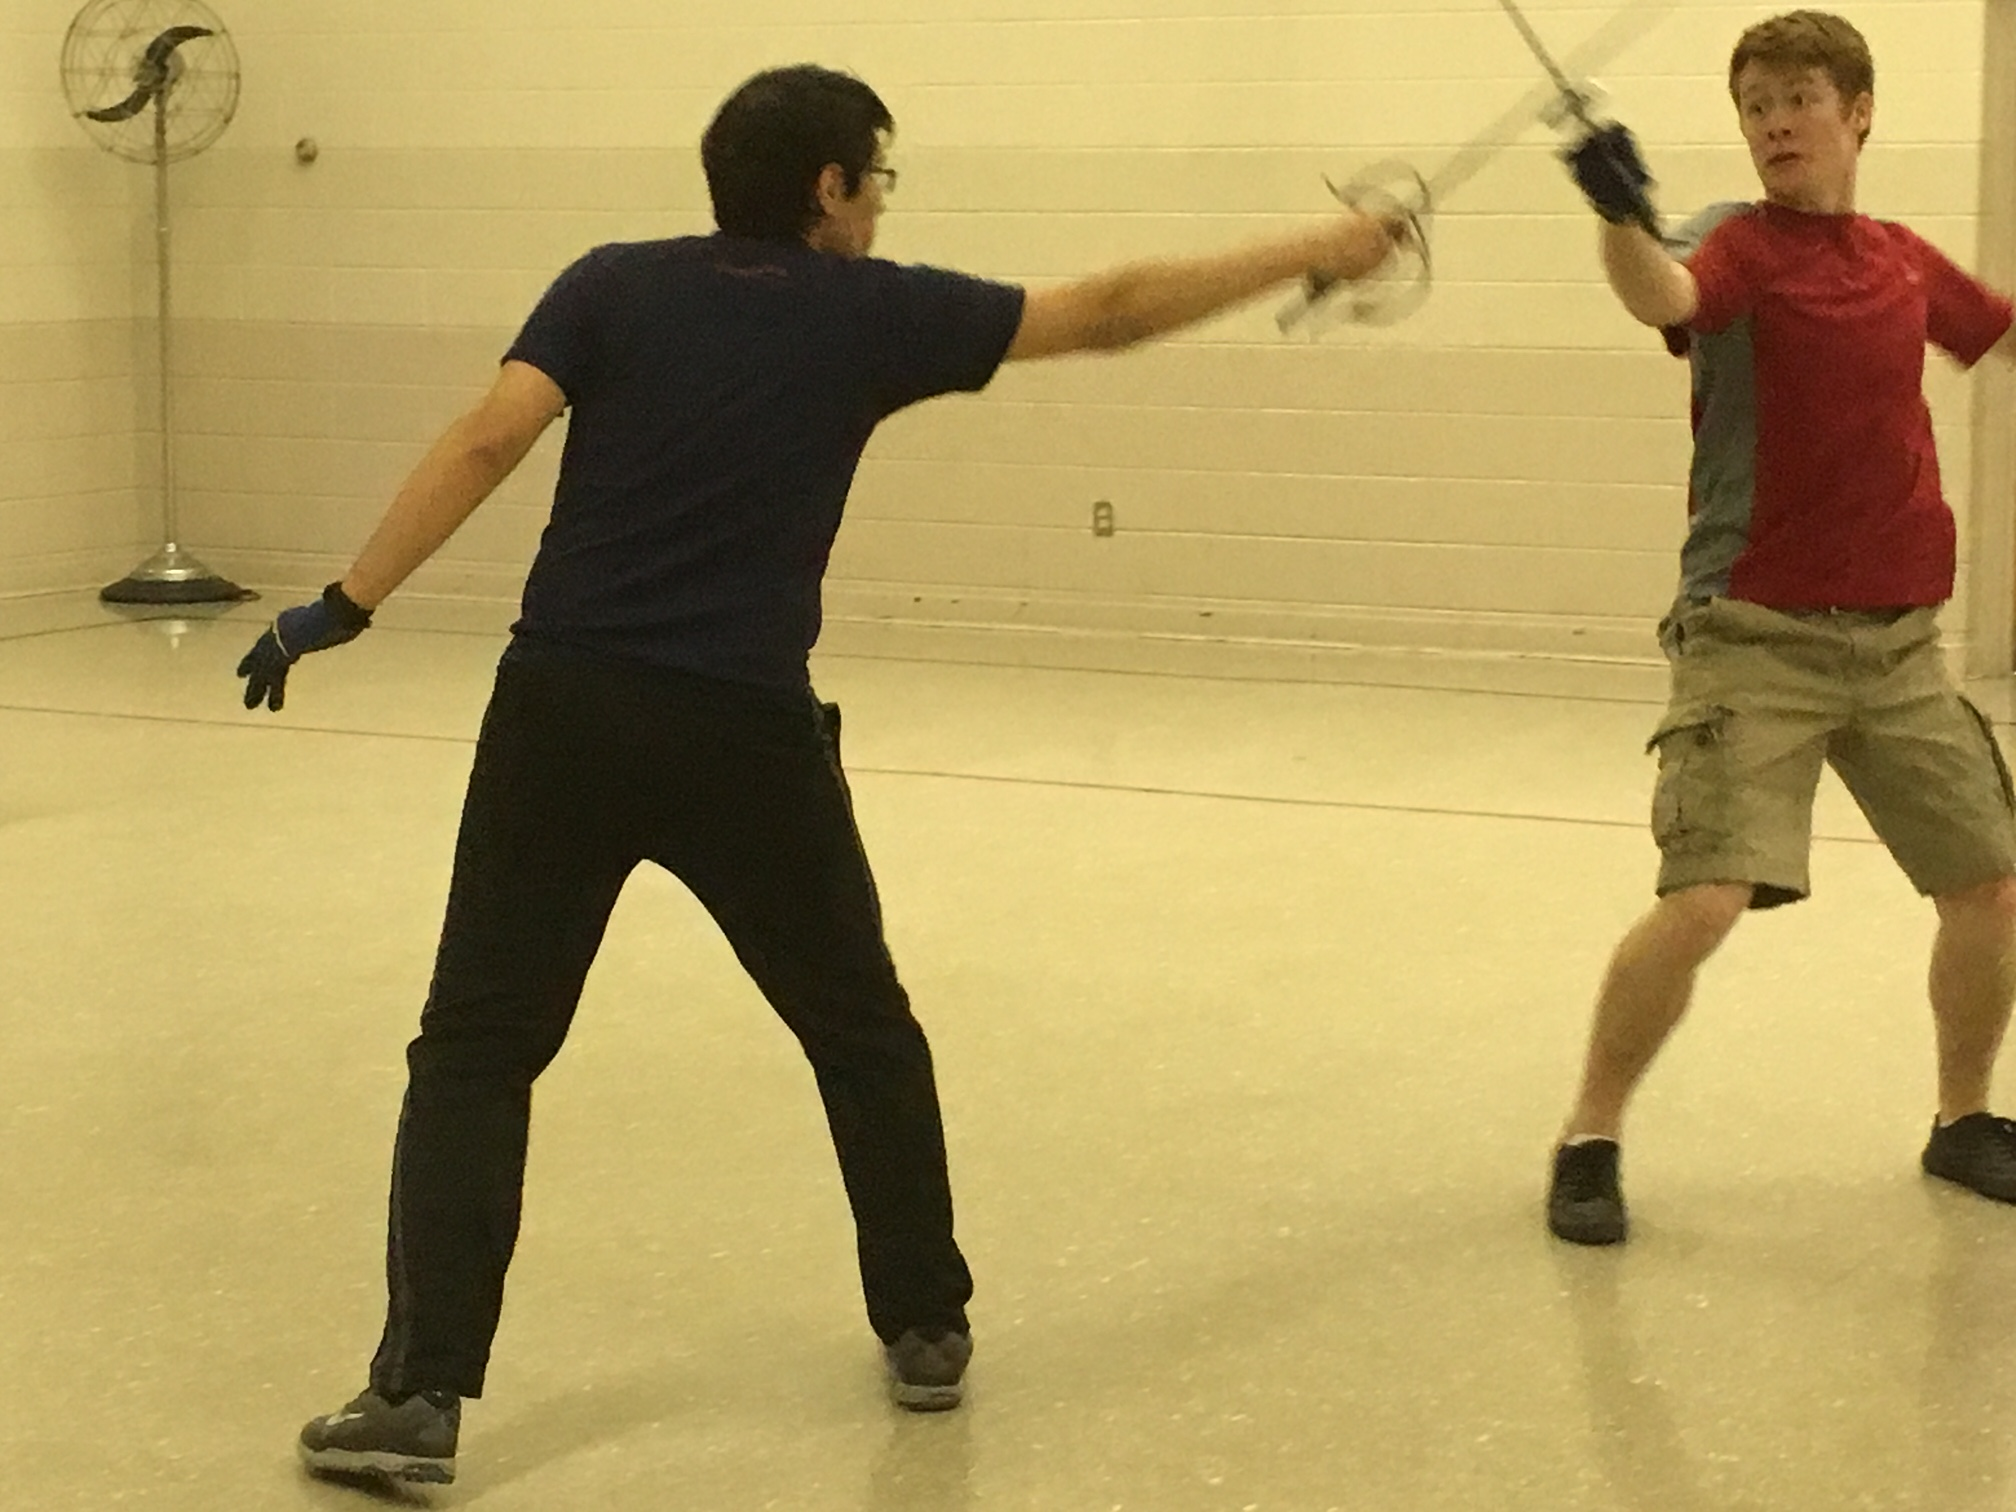 Tybalt and Mercutio learn their fight choreography